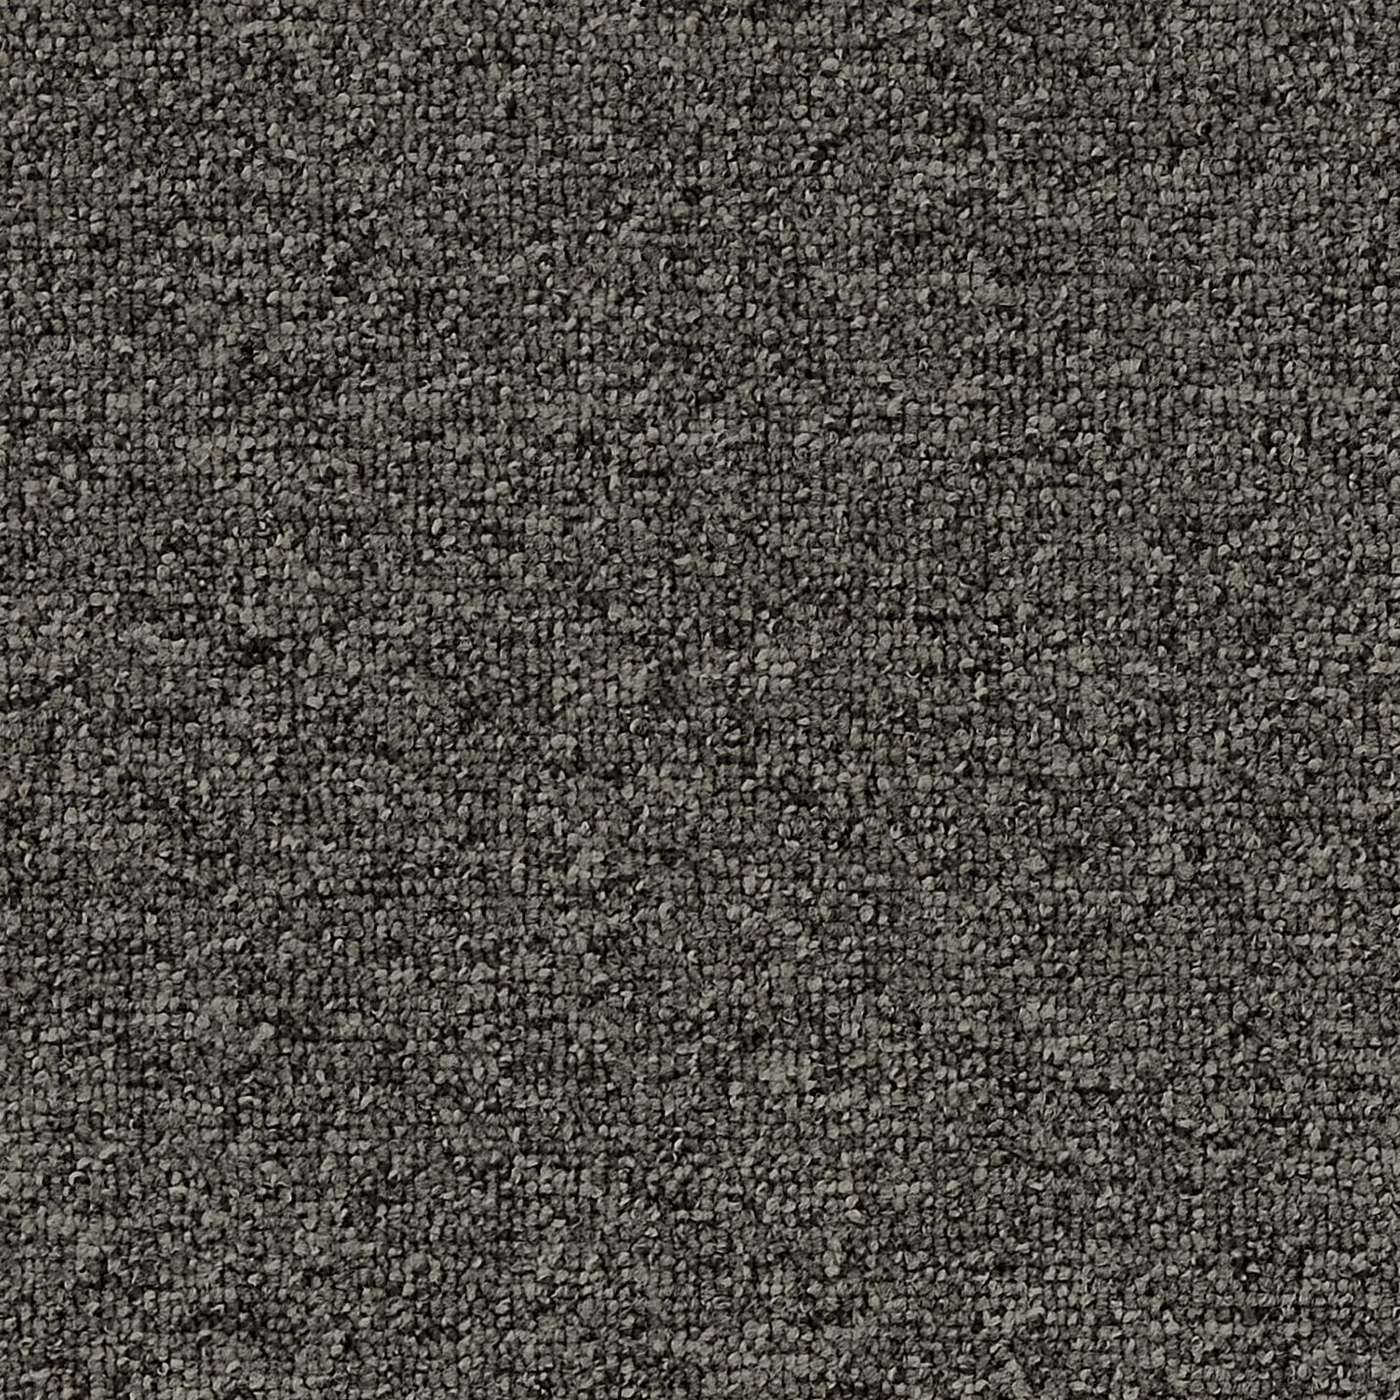 Burmatex Balance Atomic Carpet Tiles Available In 15